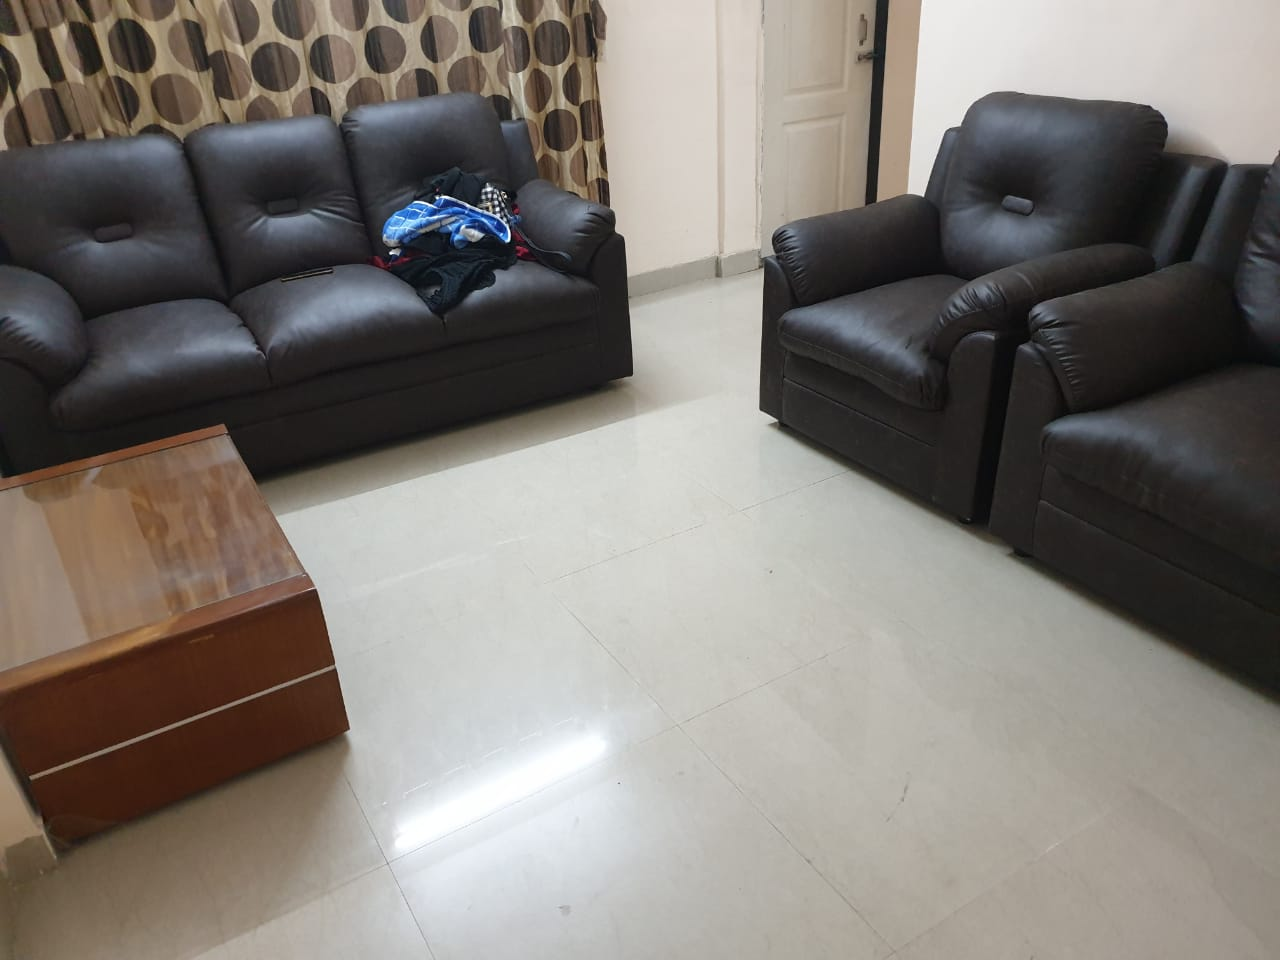 1 BHK Fully Furnished Flat for Rent in Goregaon West S.V. Road